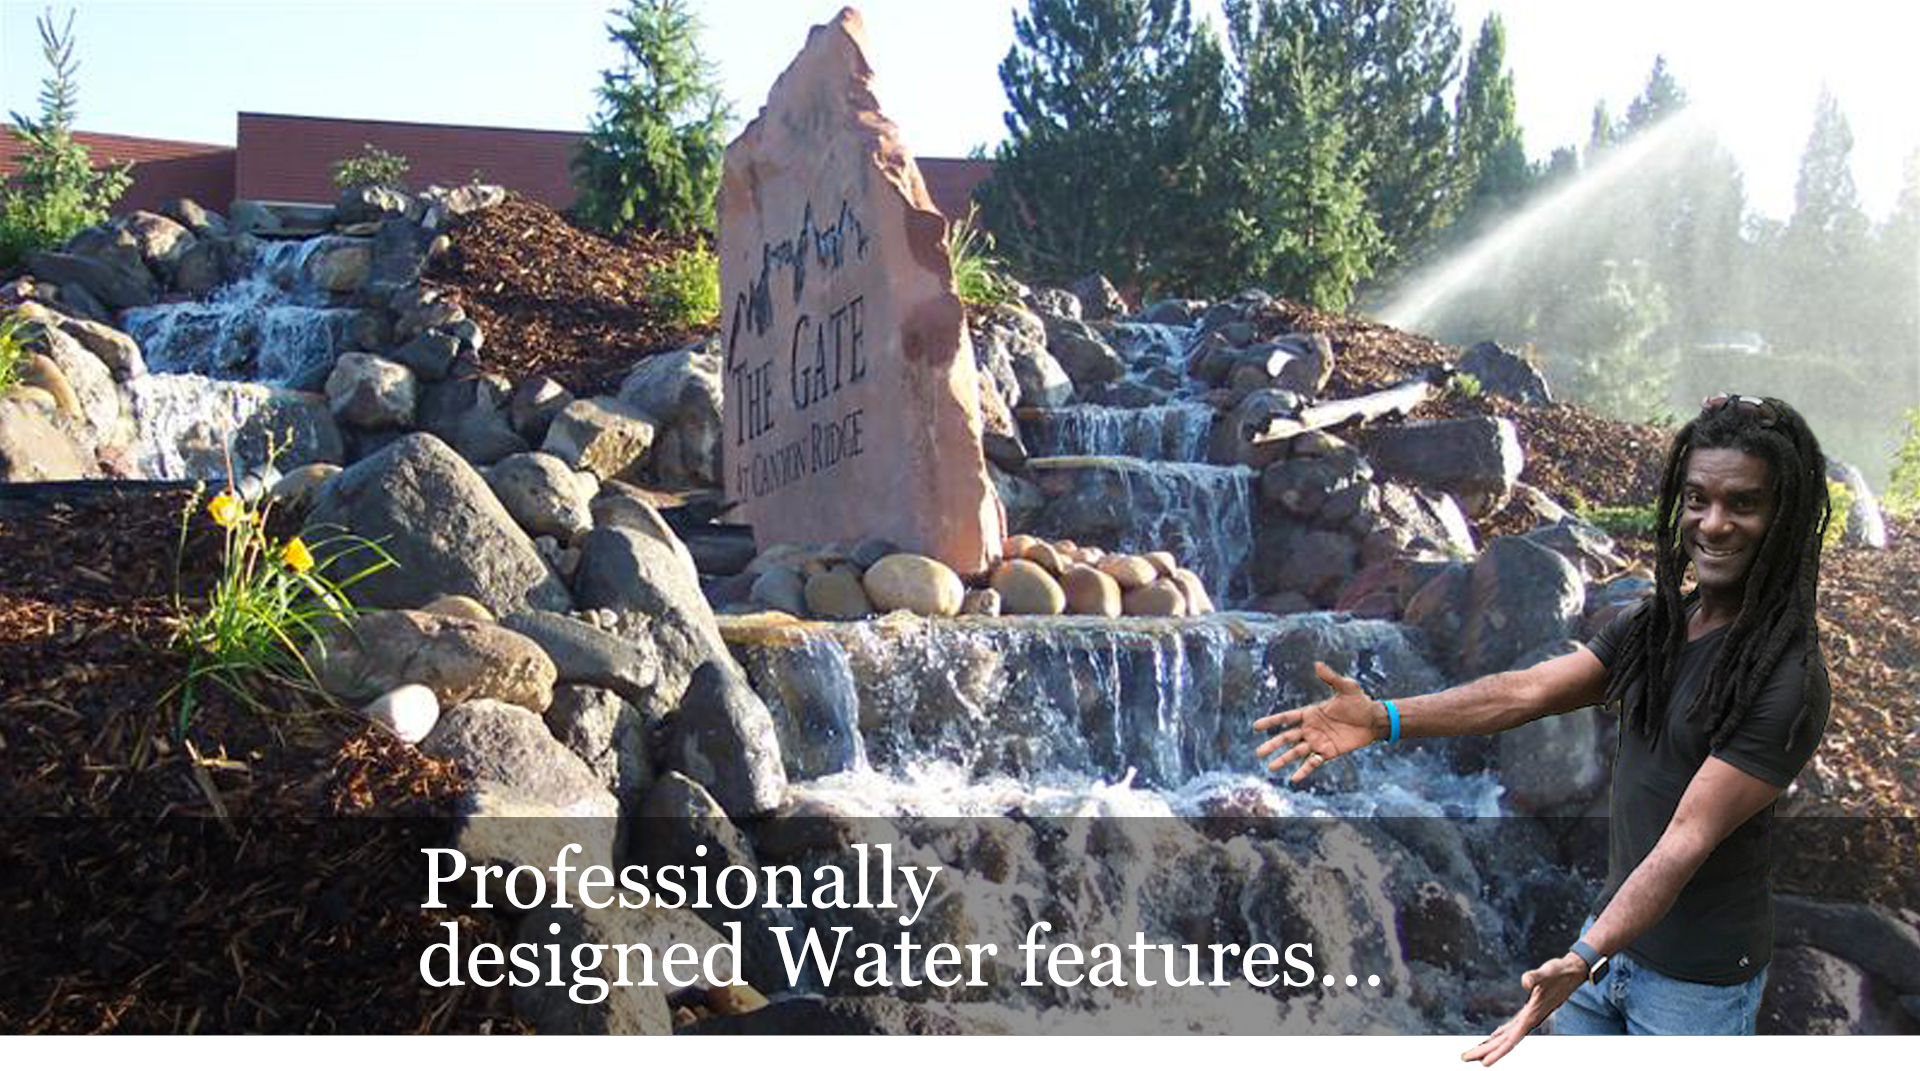 Prosionally Designed Water Features Image